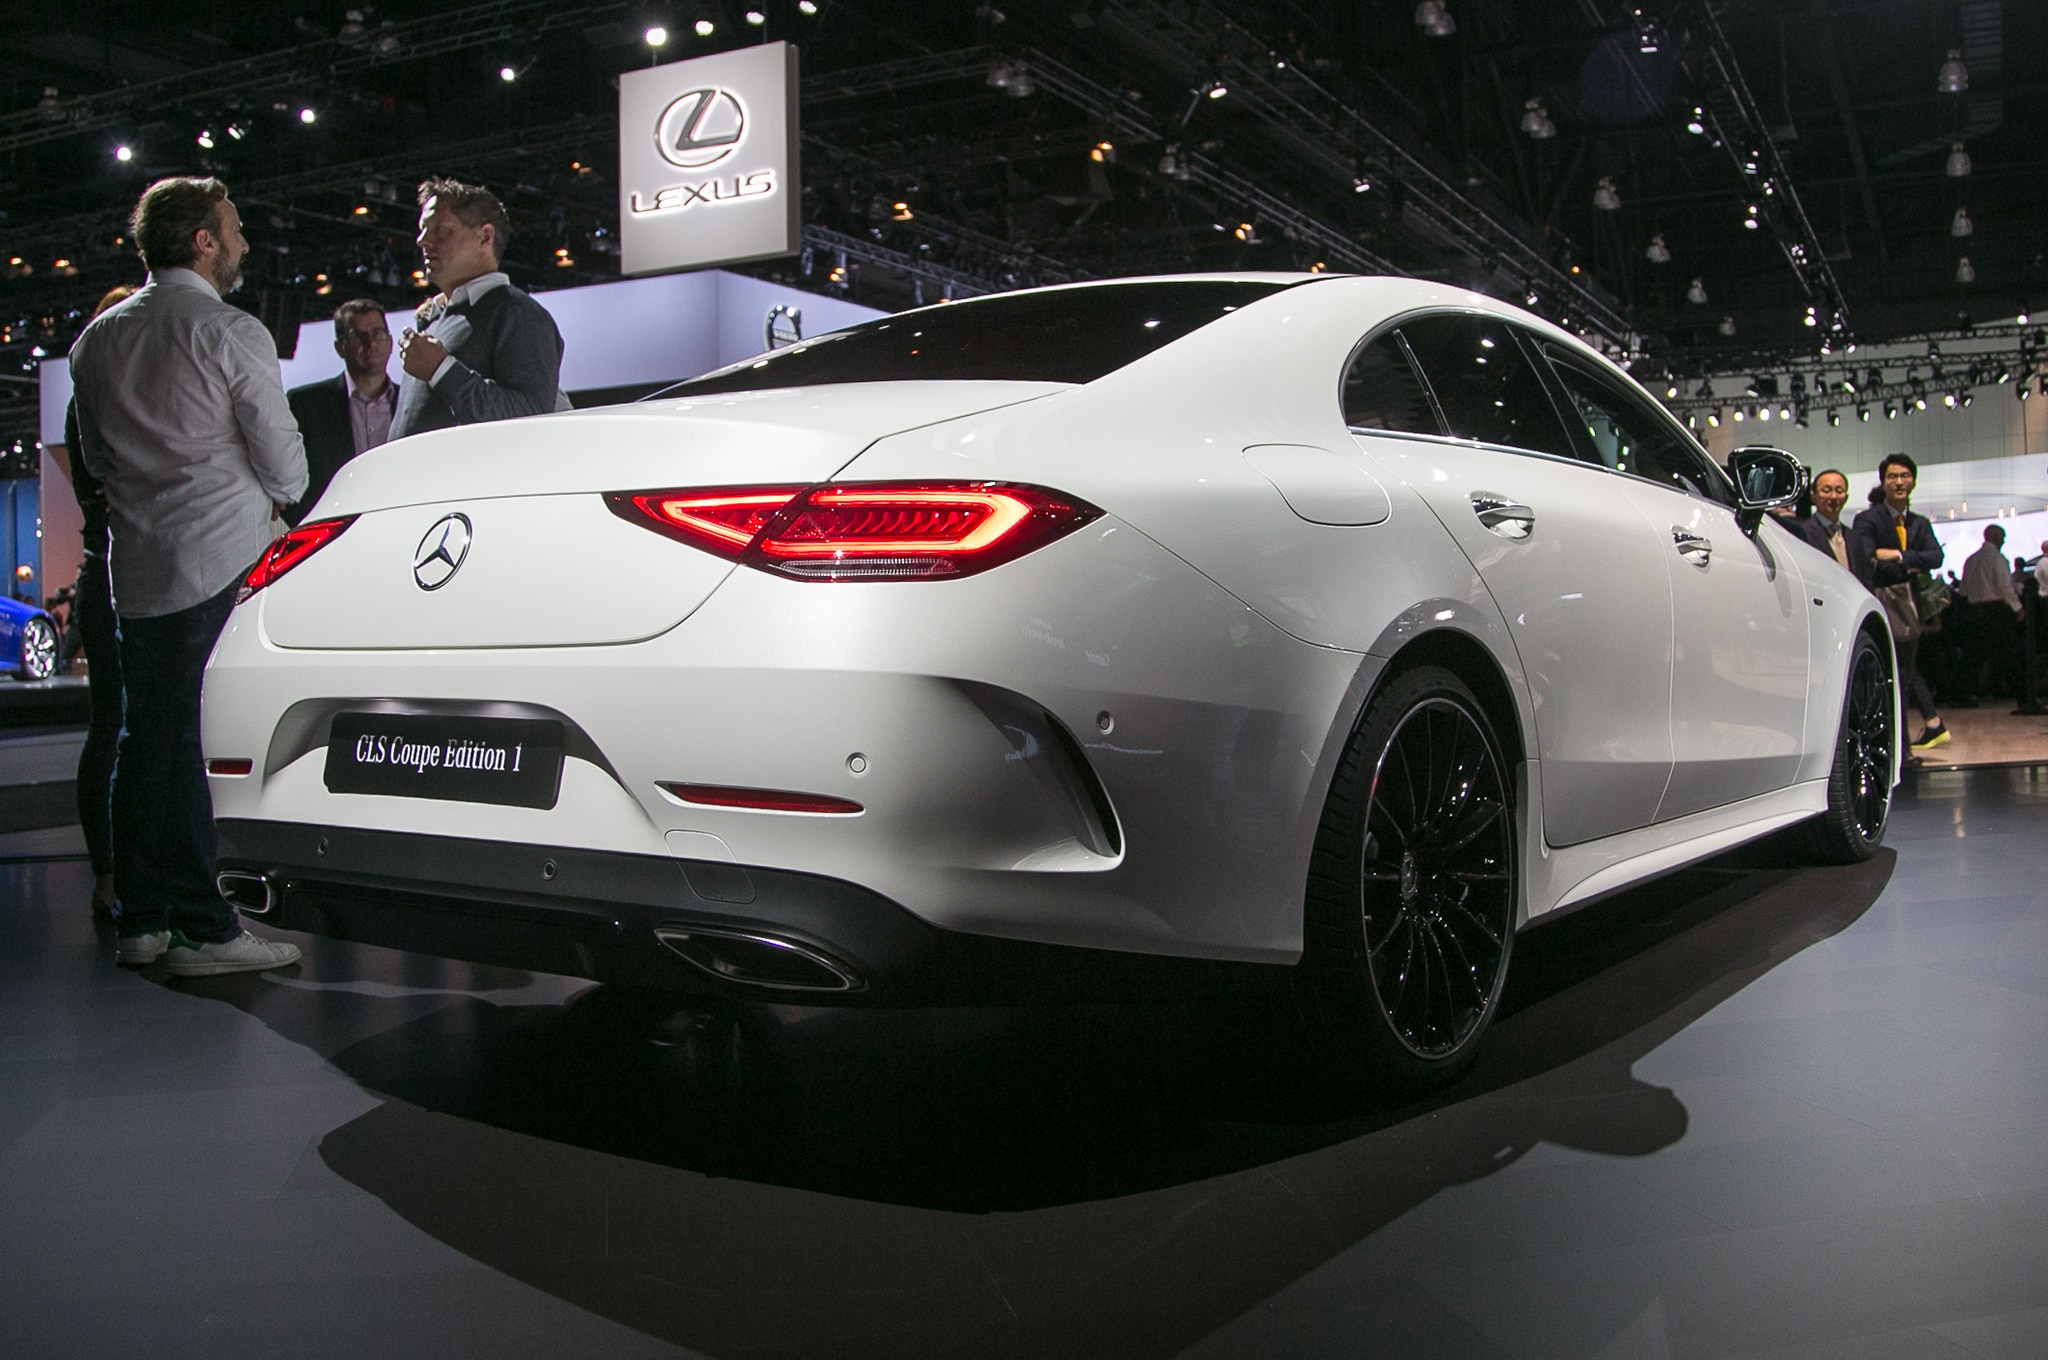 2019 Mercedes Benz Cls450 Brings Inline Six Power To The